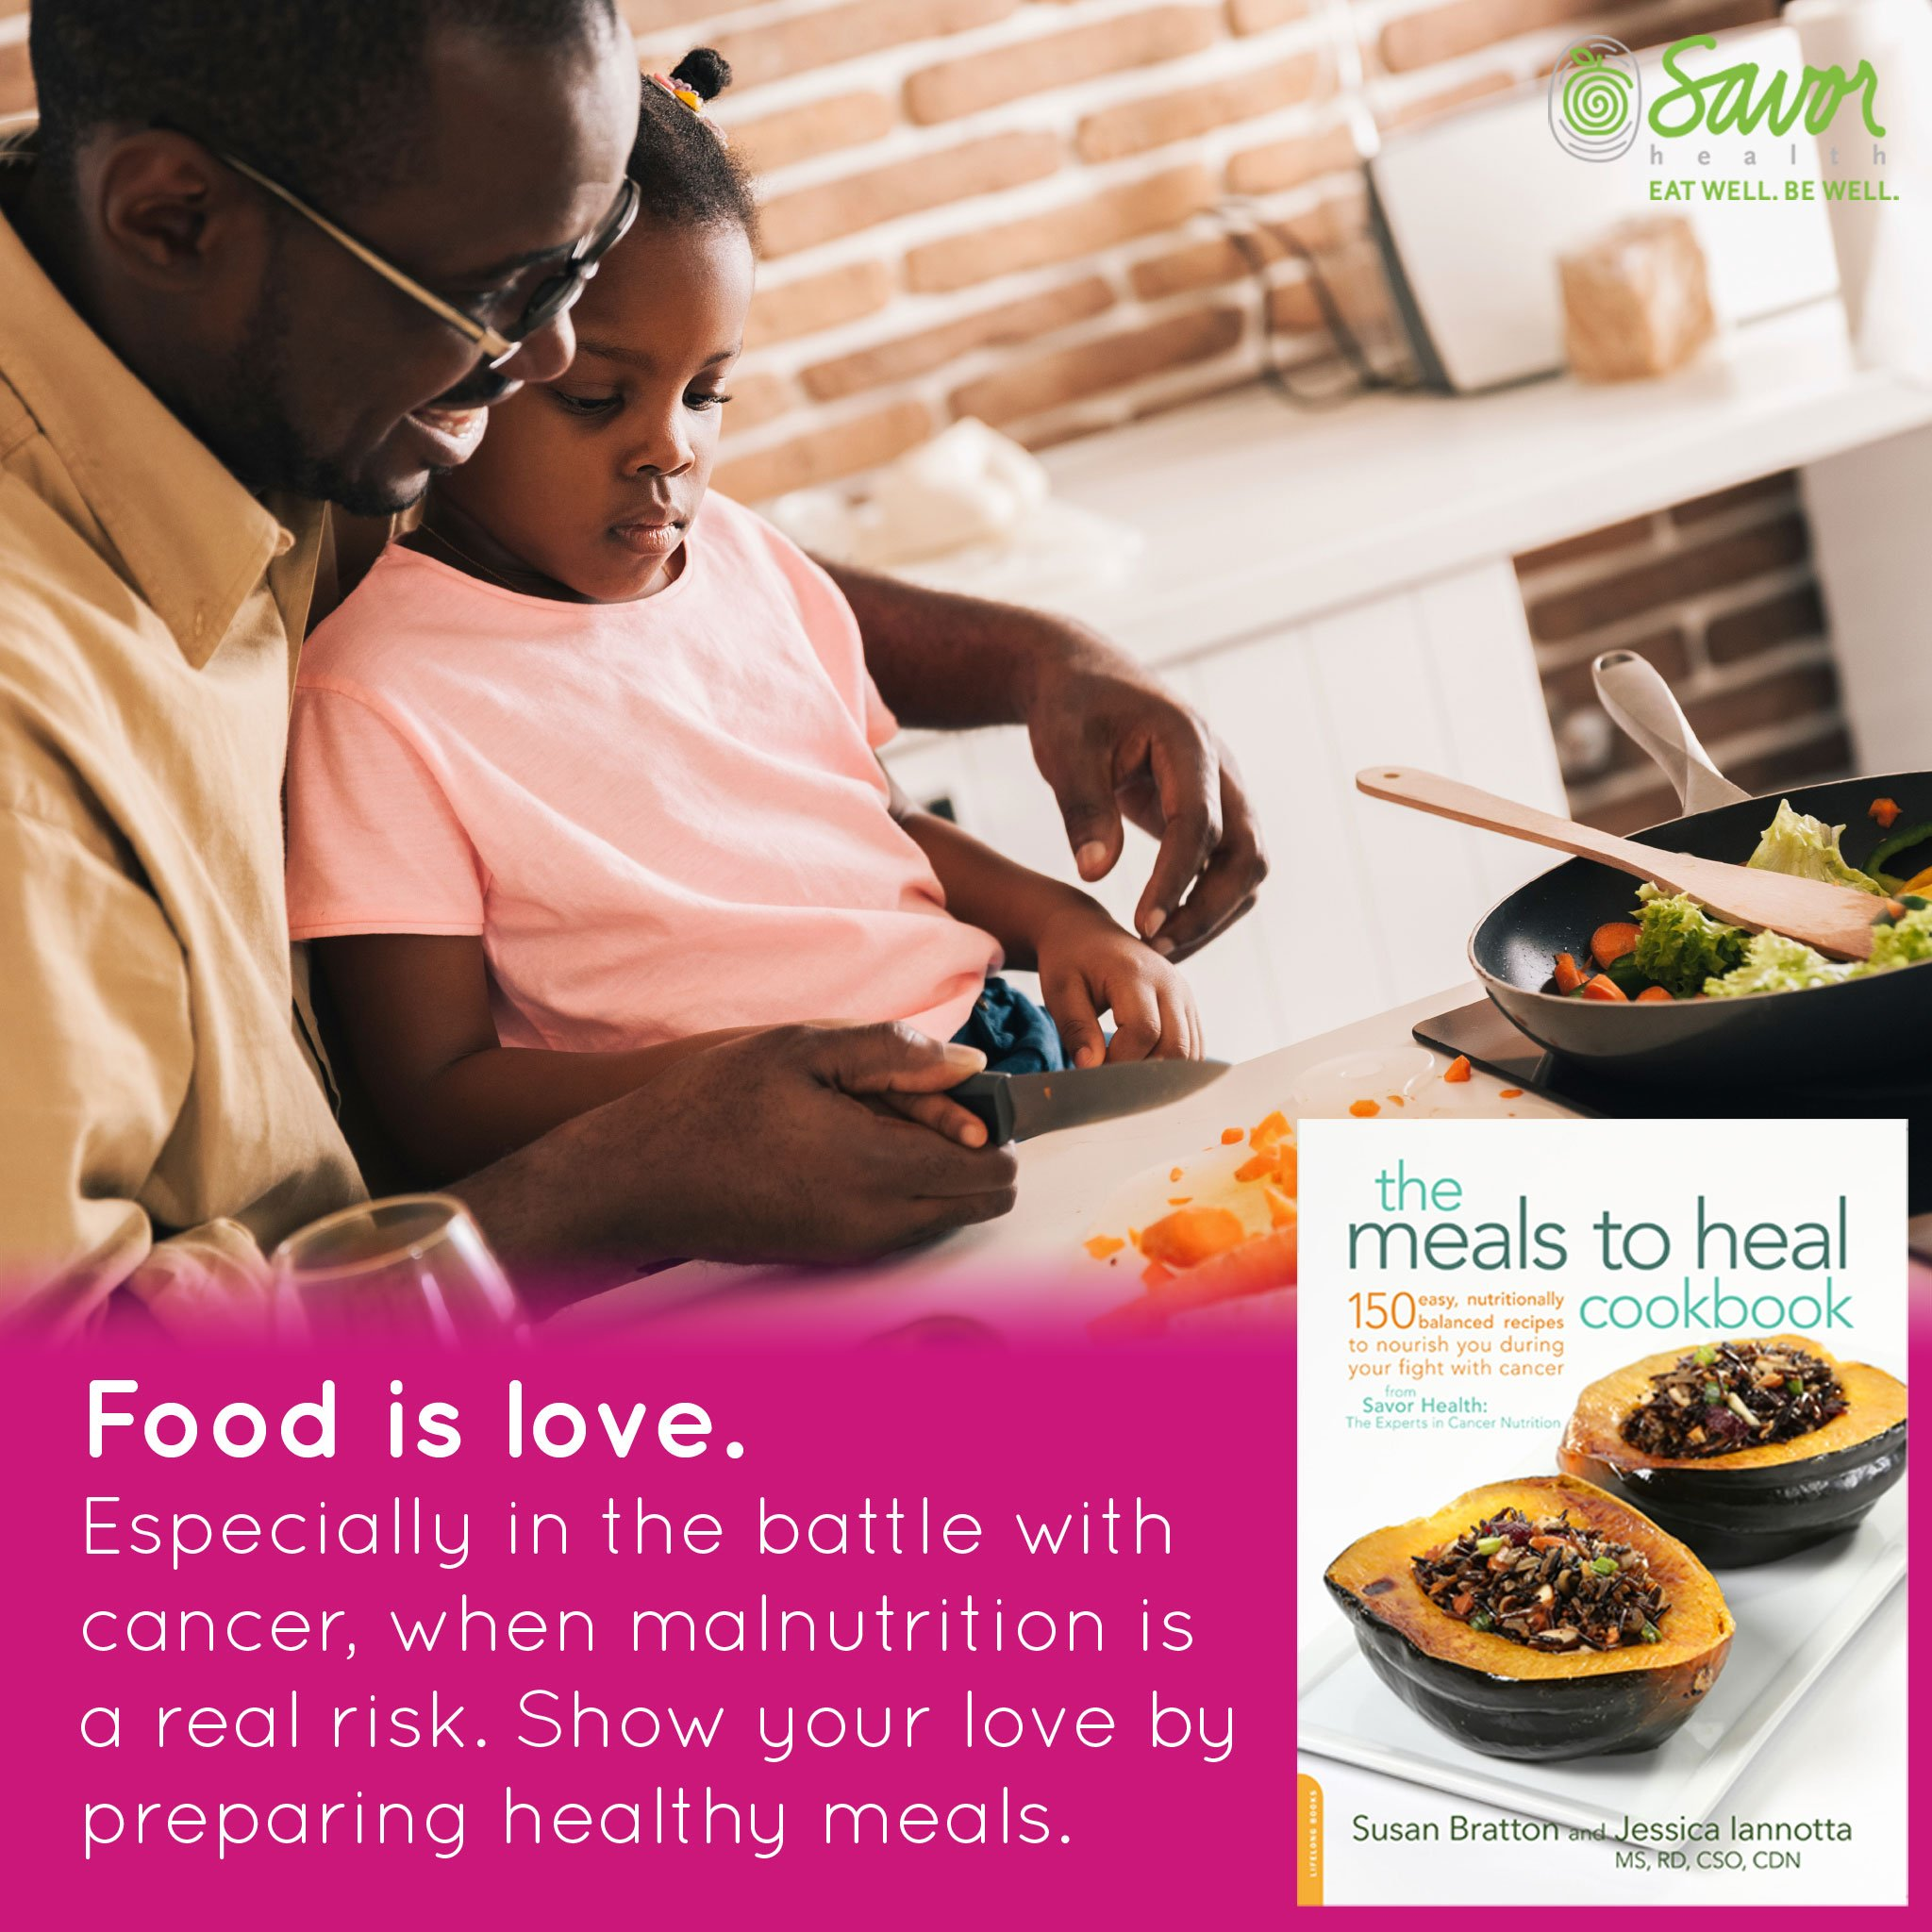 food is love, especially for cancer patients who are at risk of malnutrition